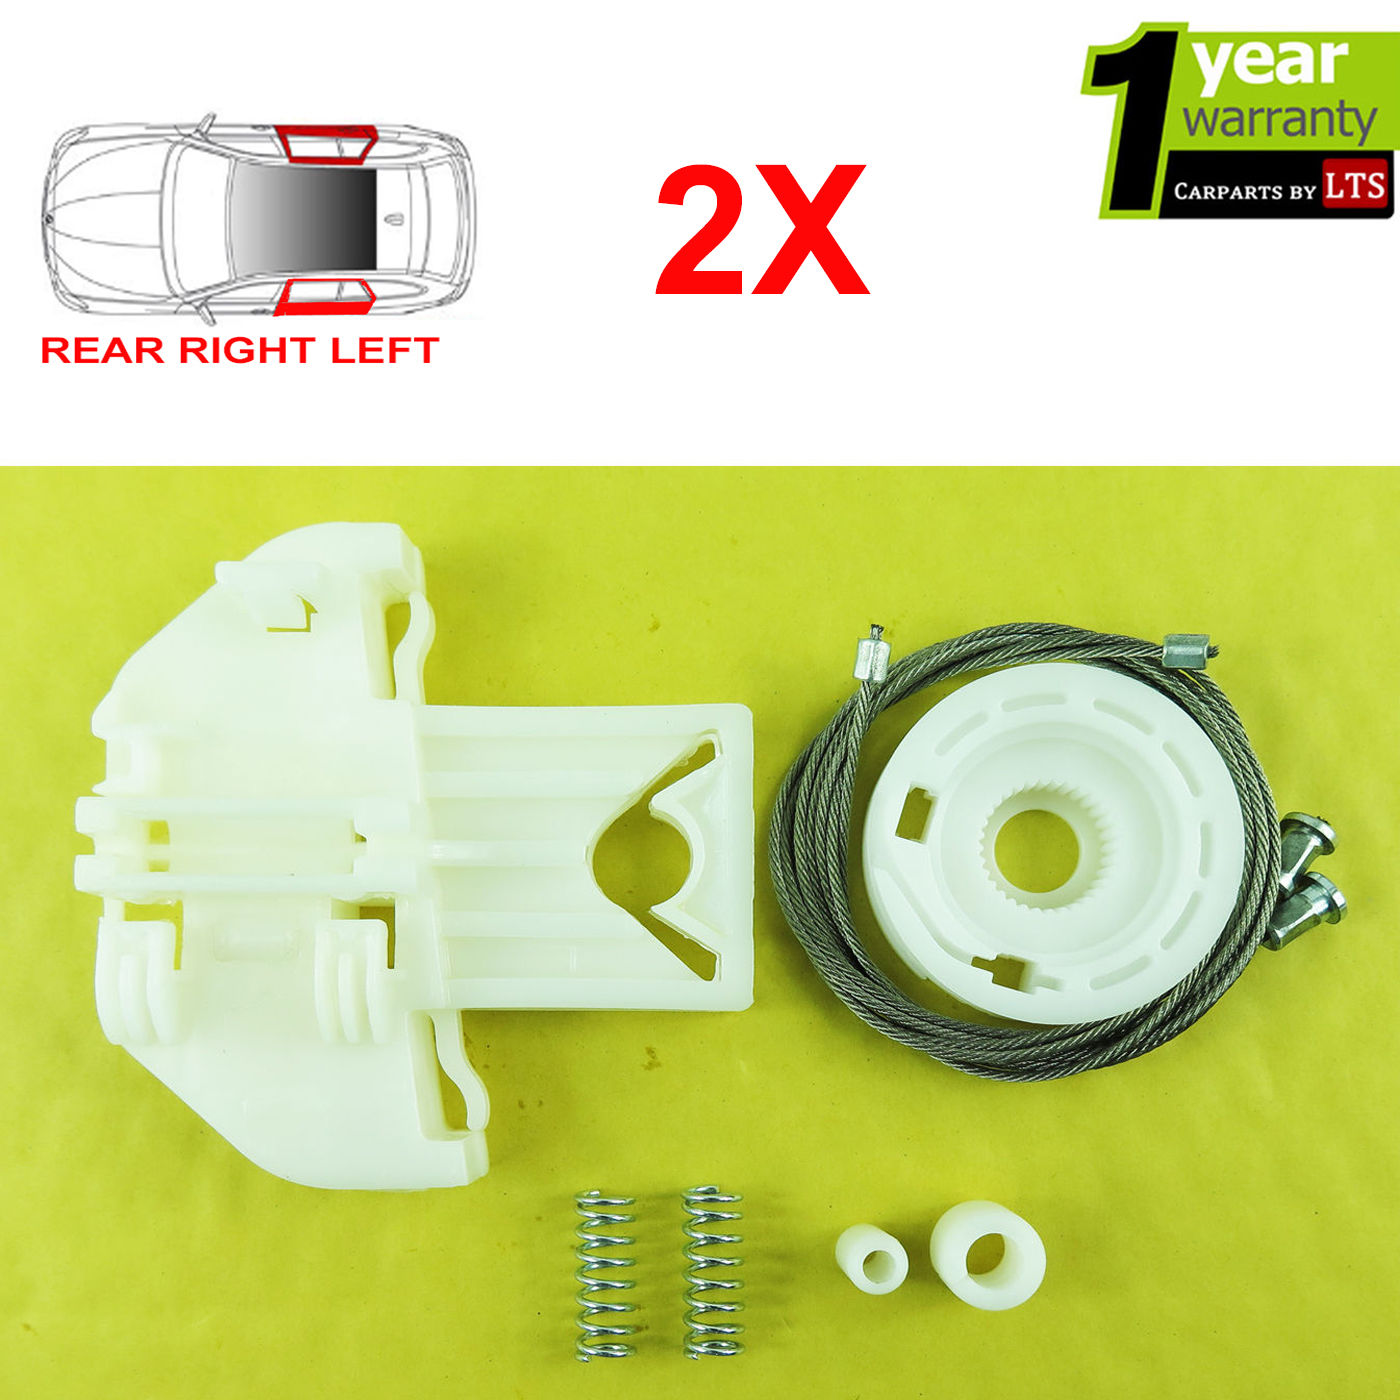 Details About 2x Ford Focus Electric Window Regulator Repair Kit Rear Right And Left